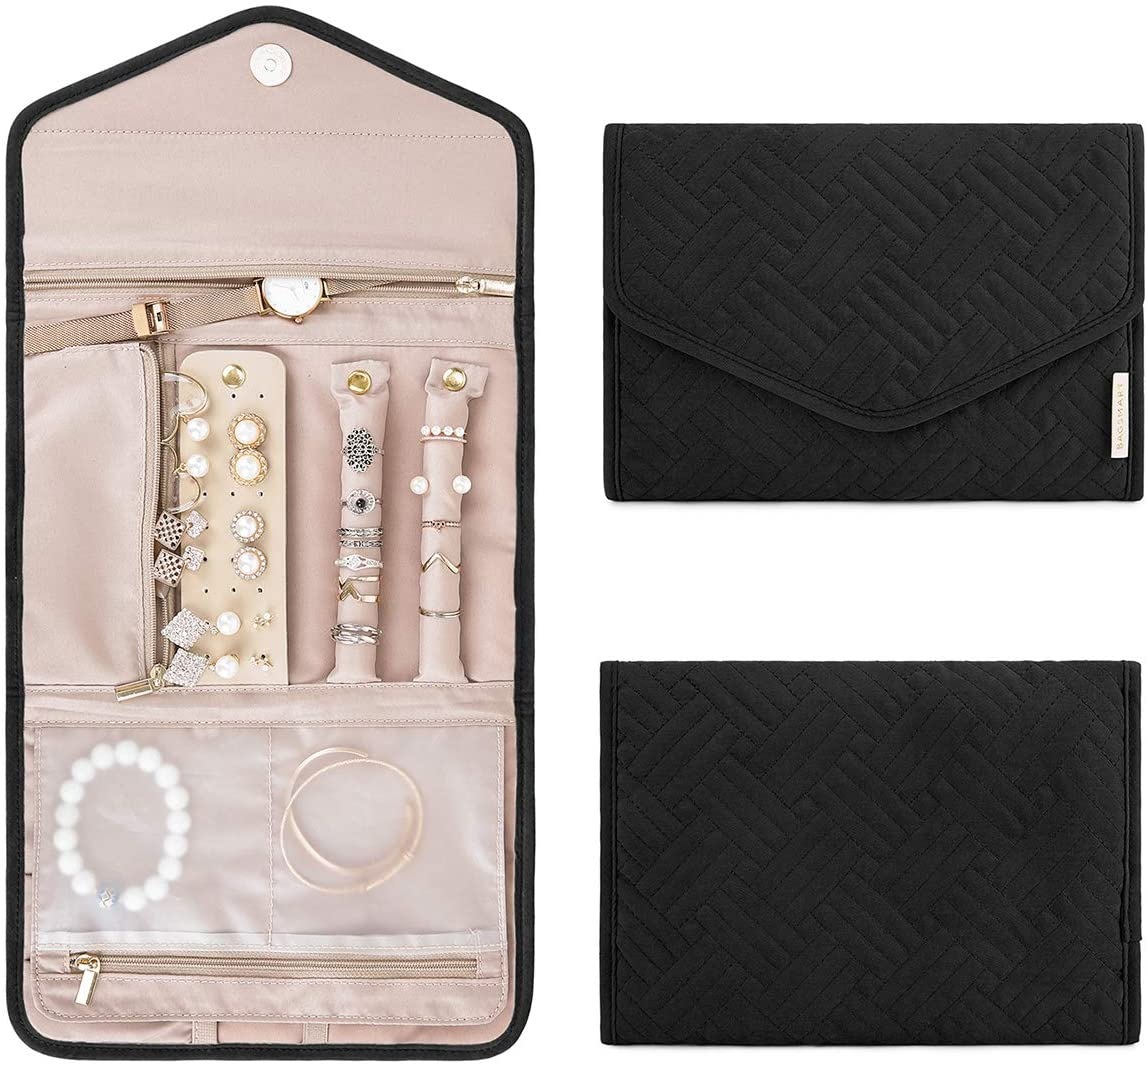 travel-gifts-for-women-case